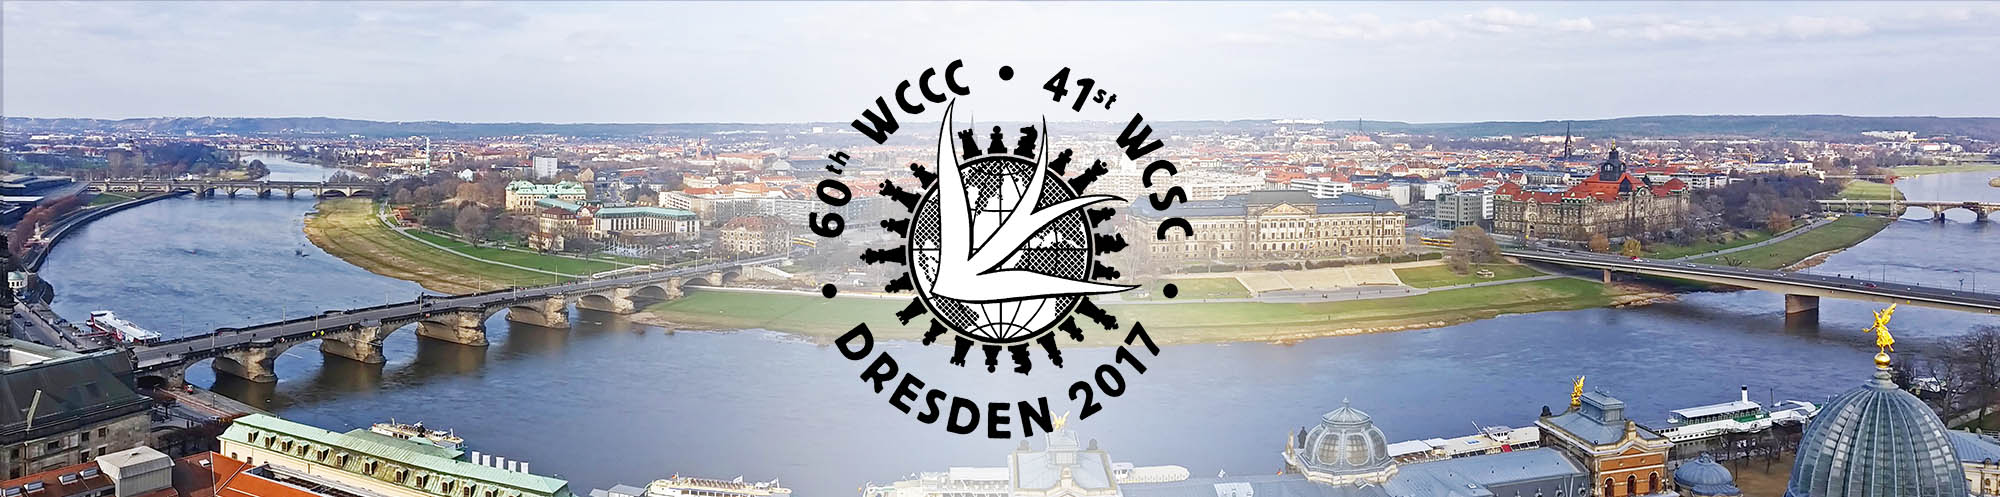 WCCC 2017